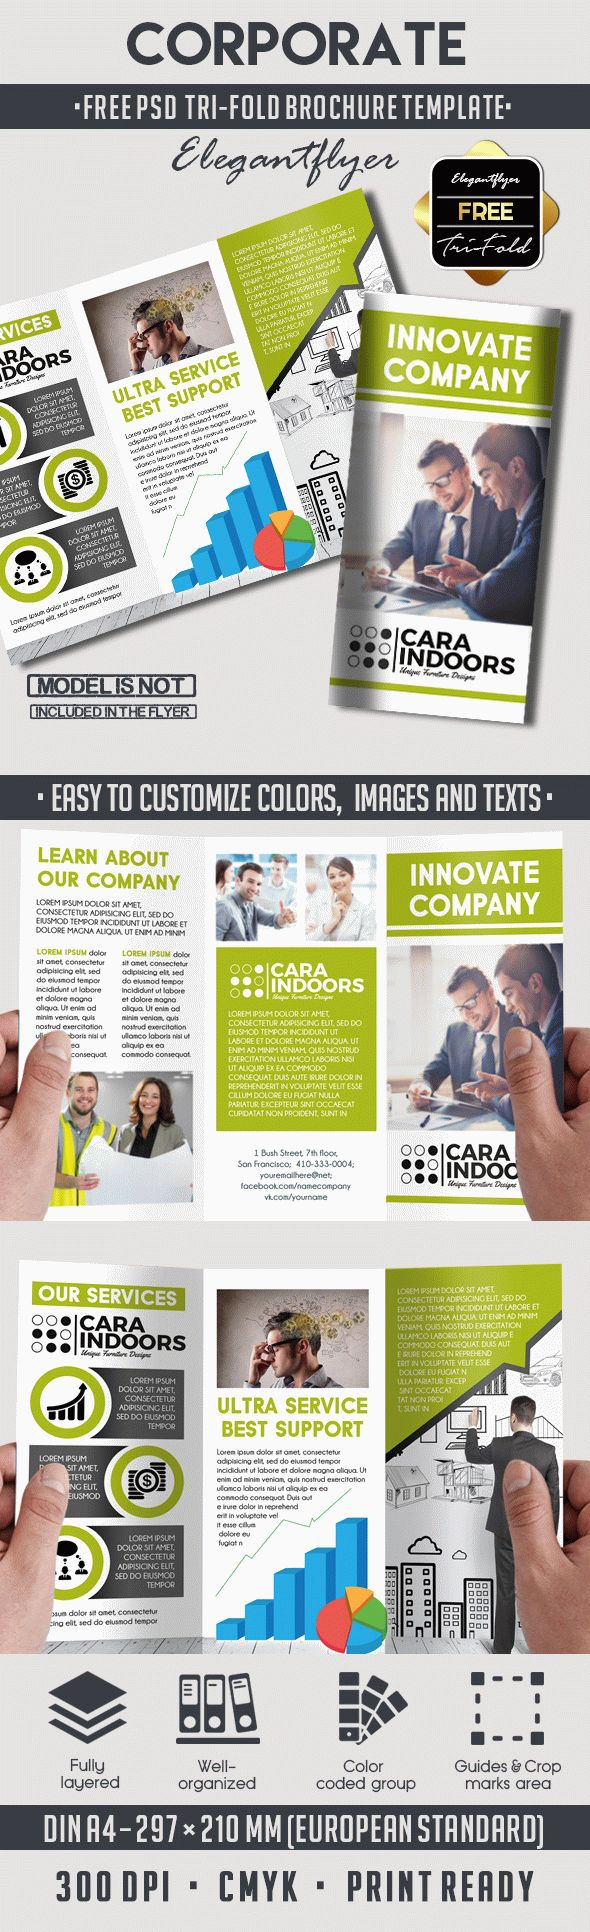 Corporate brochure design psd by elegantflyer for Psd template brochure